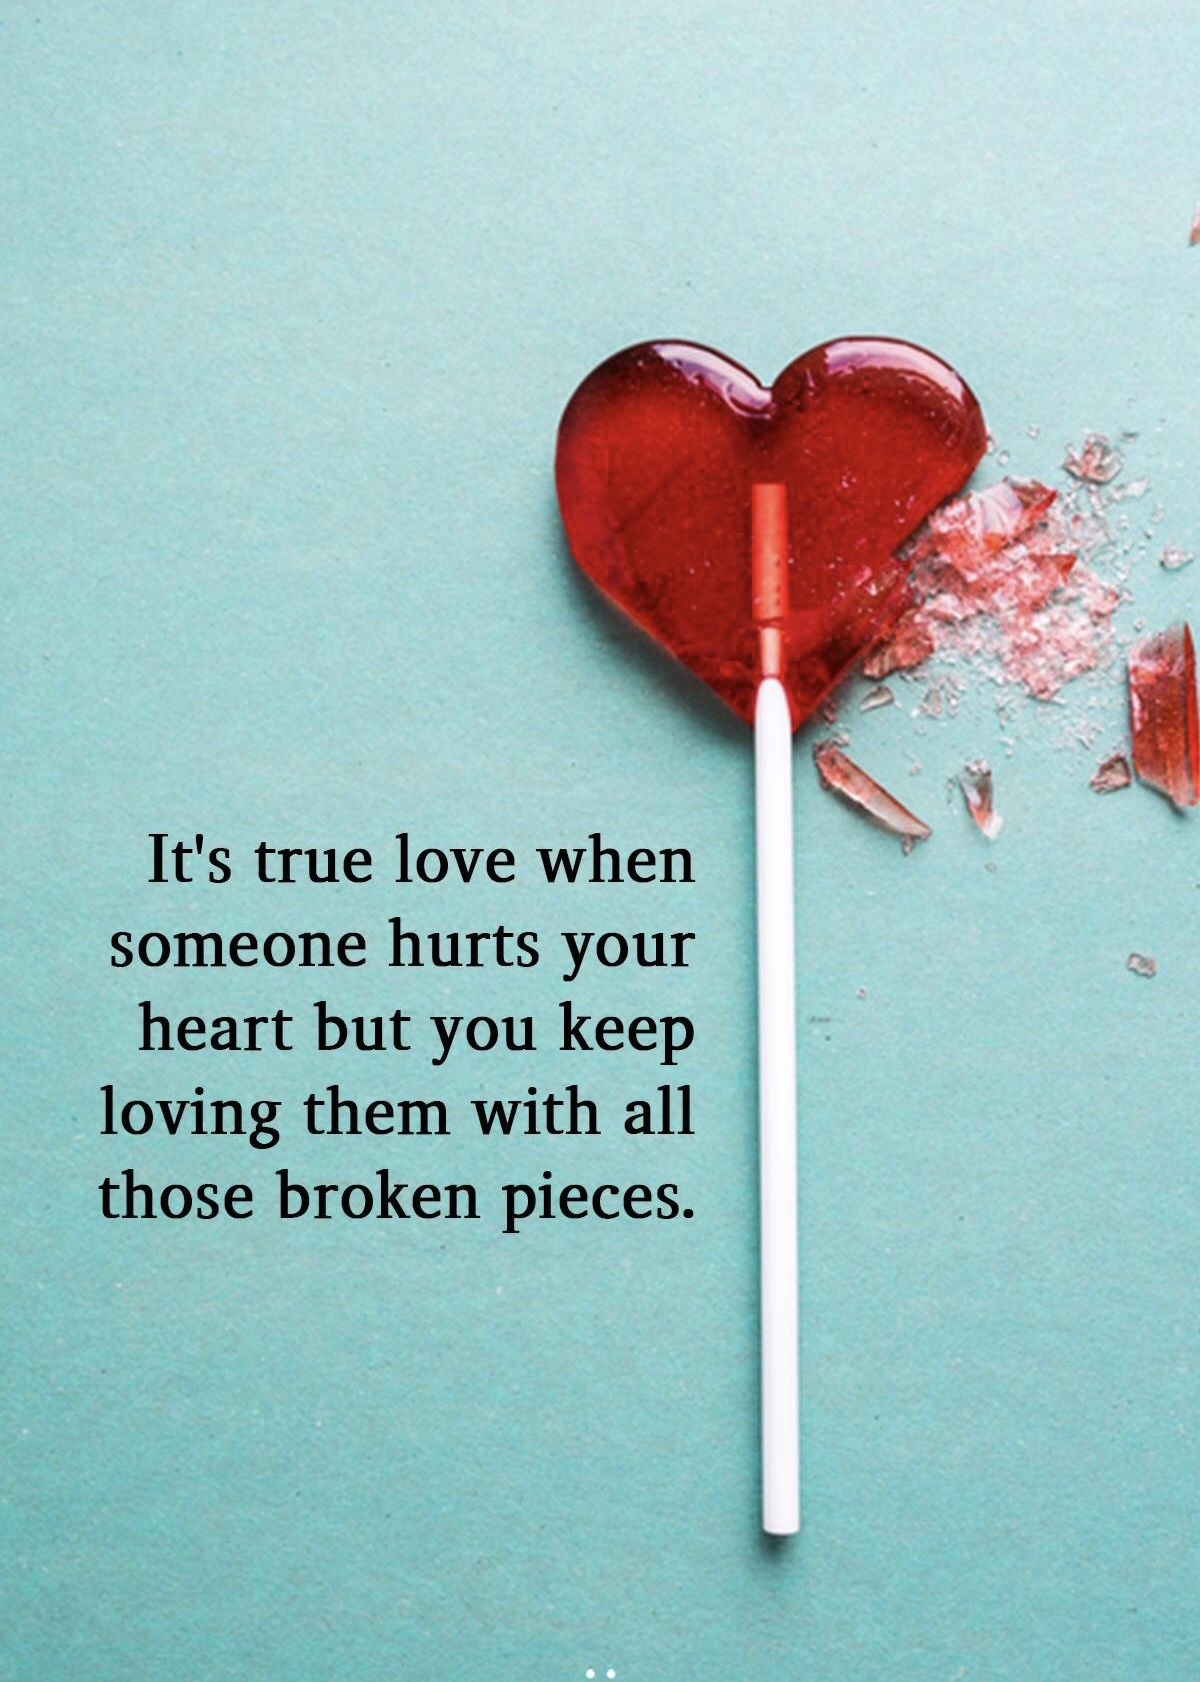 Pin By Grantfam On Relationship Trust Love Life Quotes When Someone Hurts You Love Life Quotes Hurt Heart